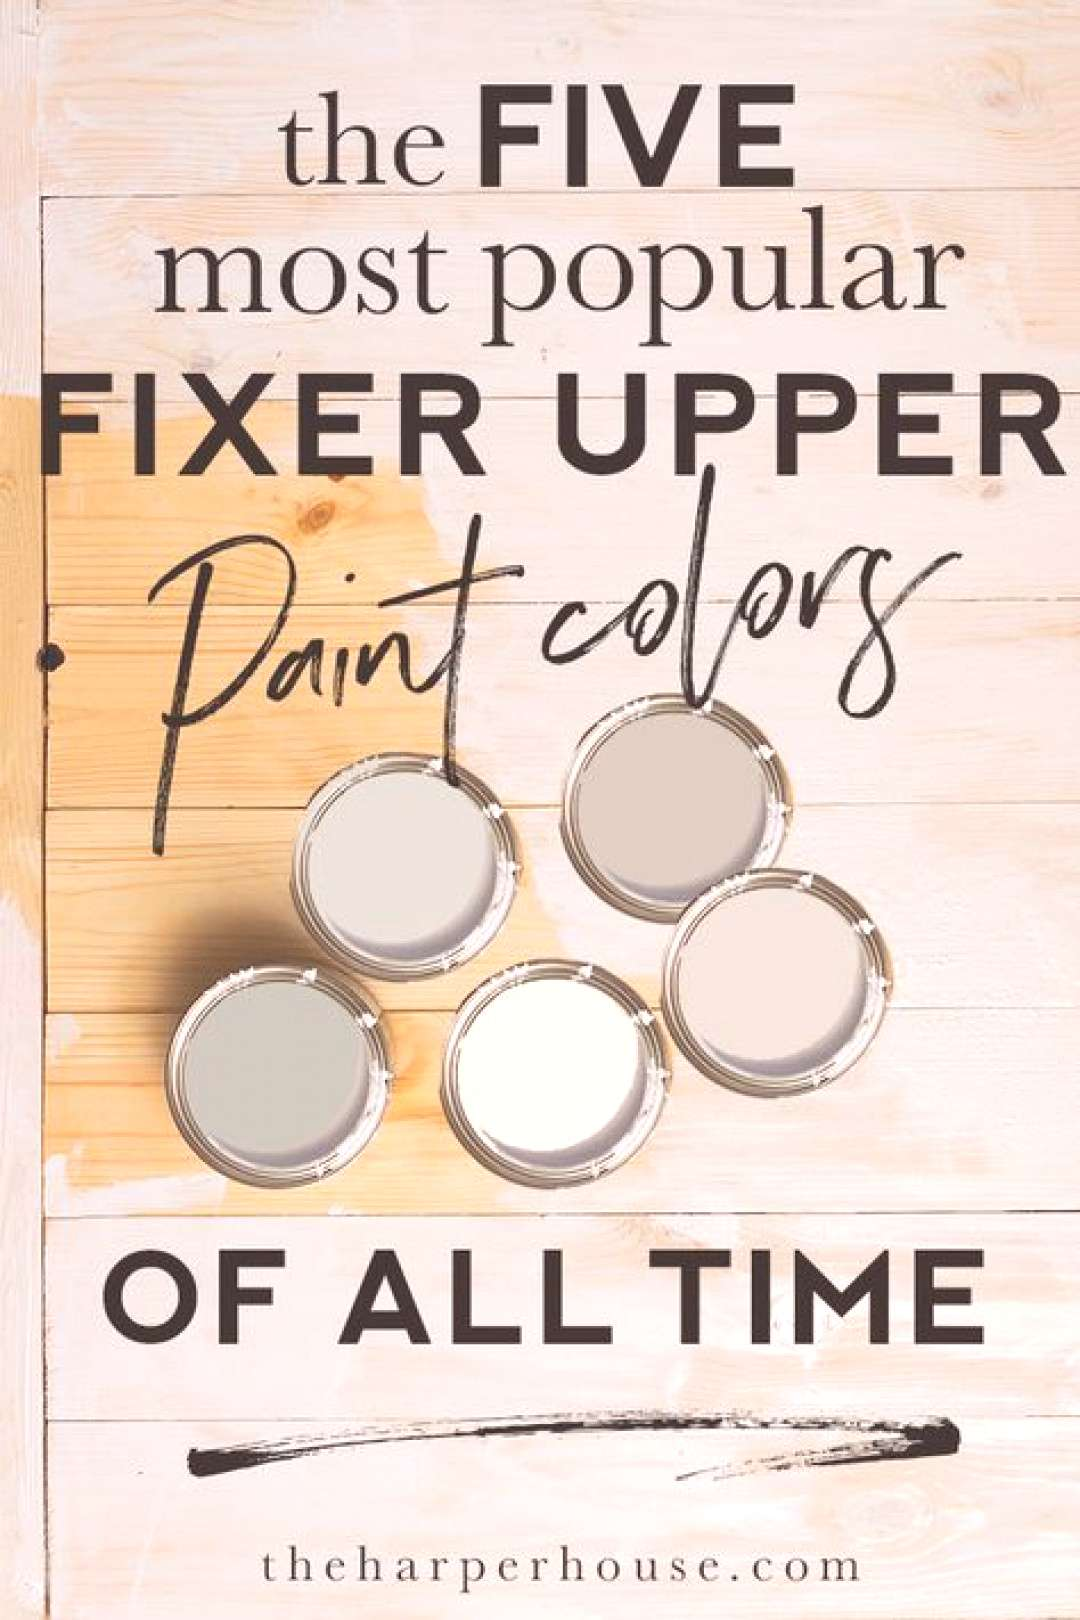 Fixer Upper Paint Colors - the 5 MOST popular the most popular Fixer Upper paint colors of ALL TIME